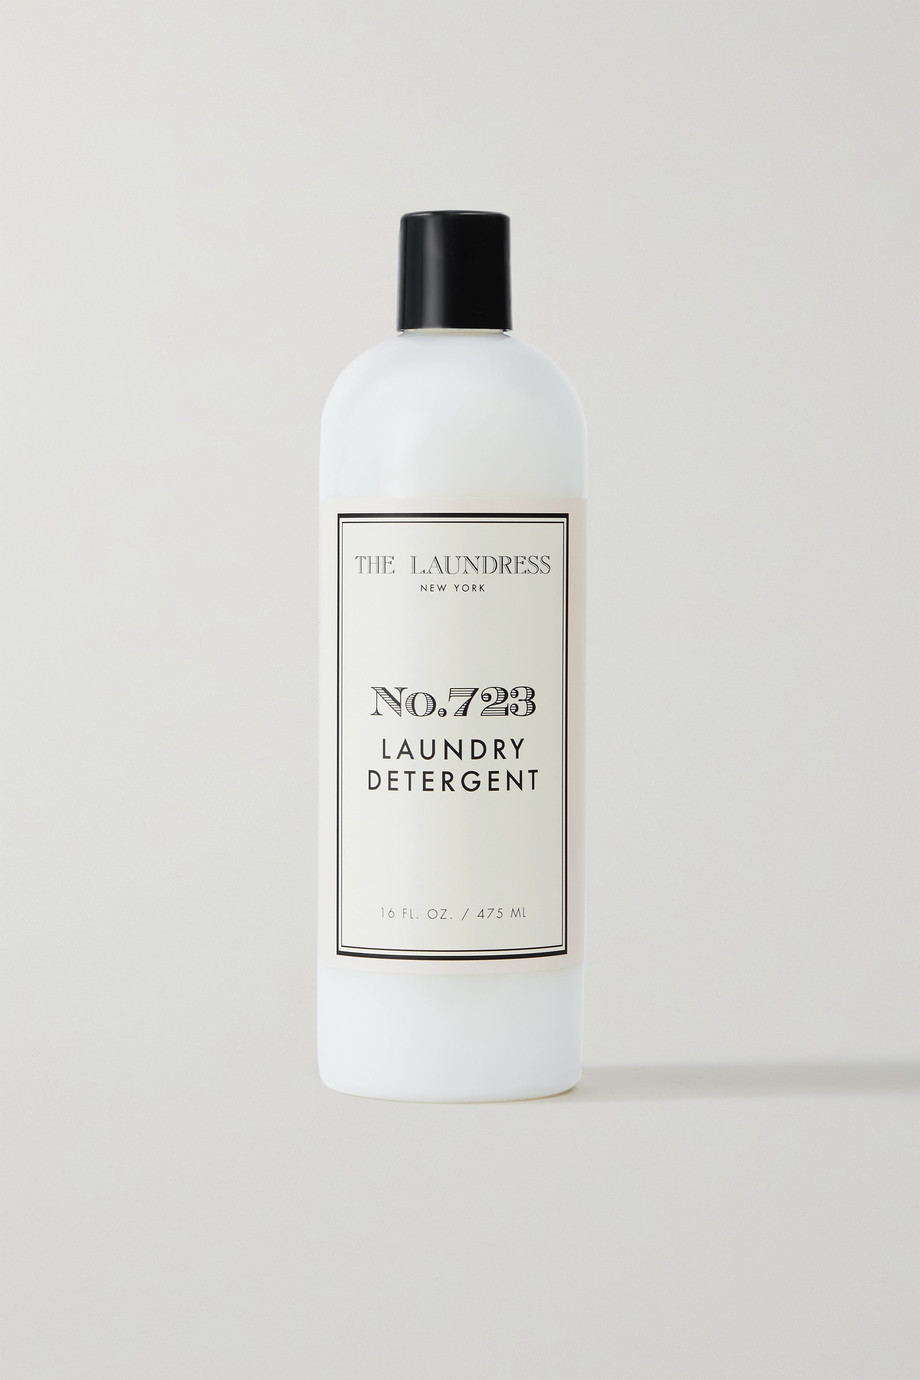 THE LAUNDRESS No. 723 Laundry Detergent, 475ml